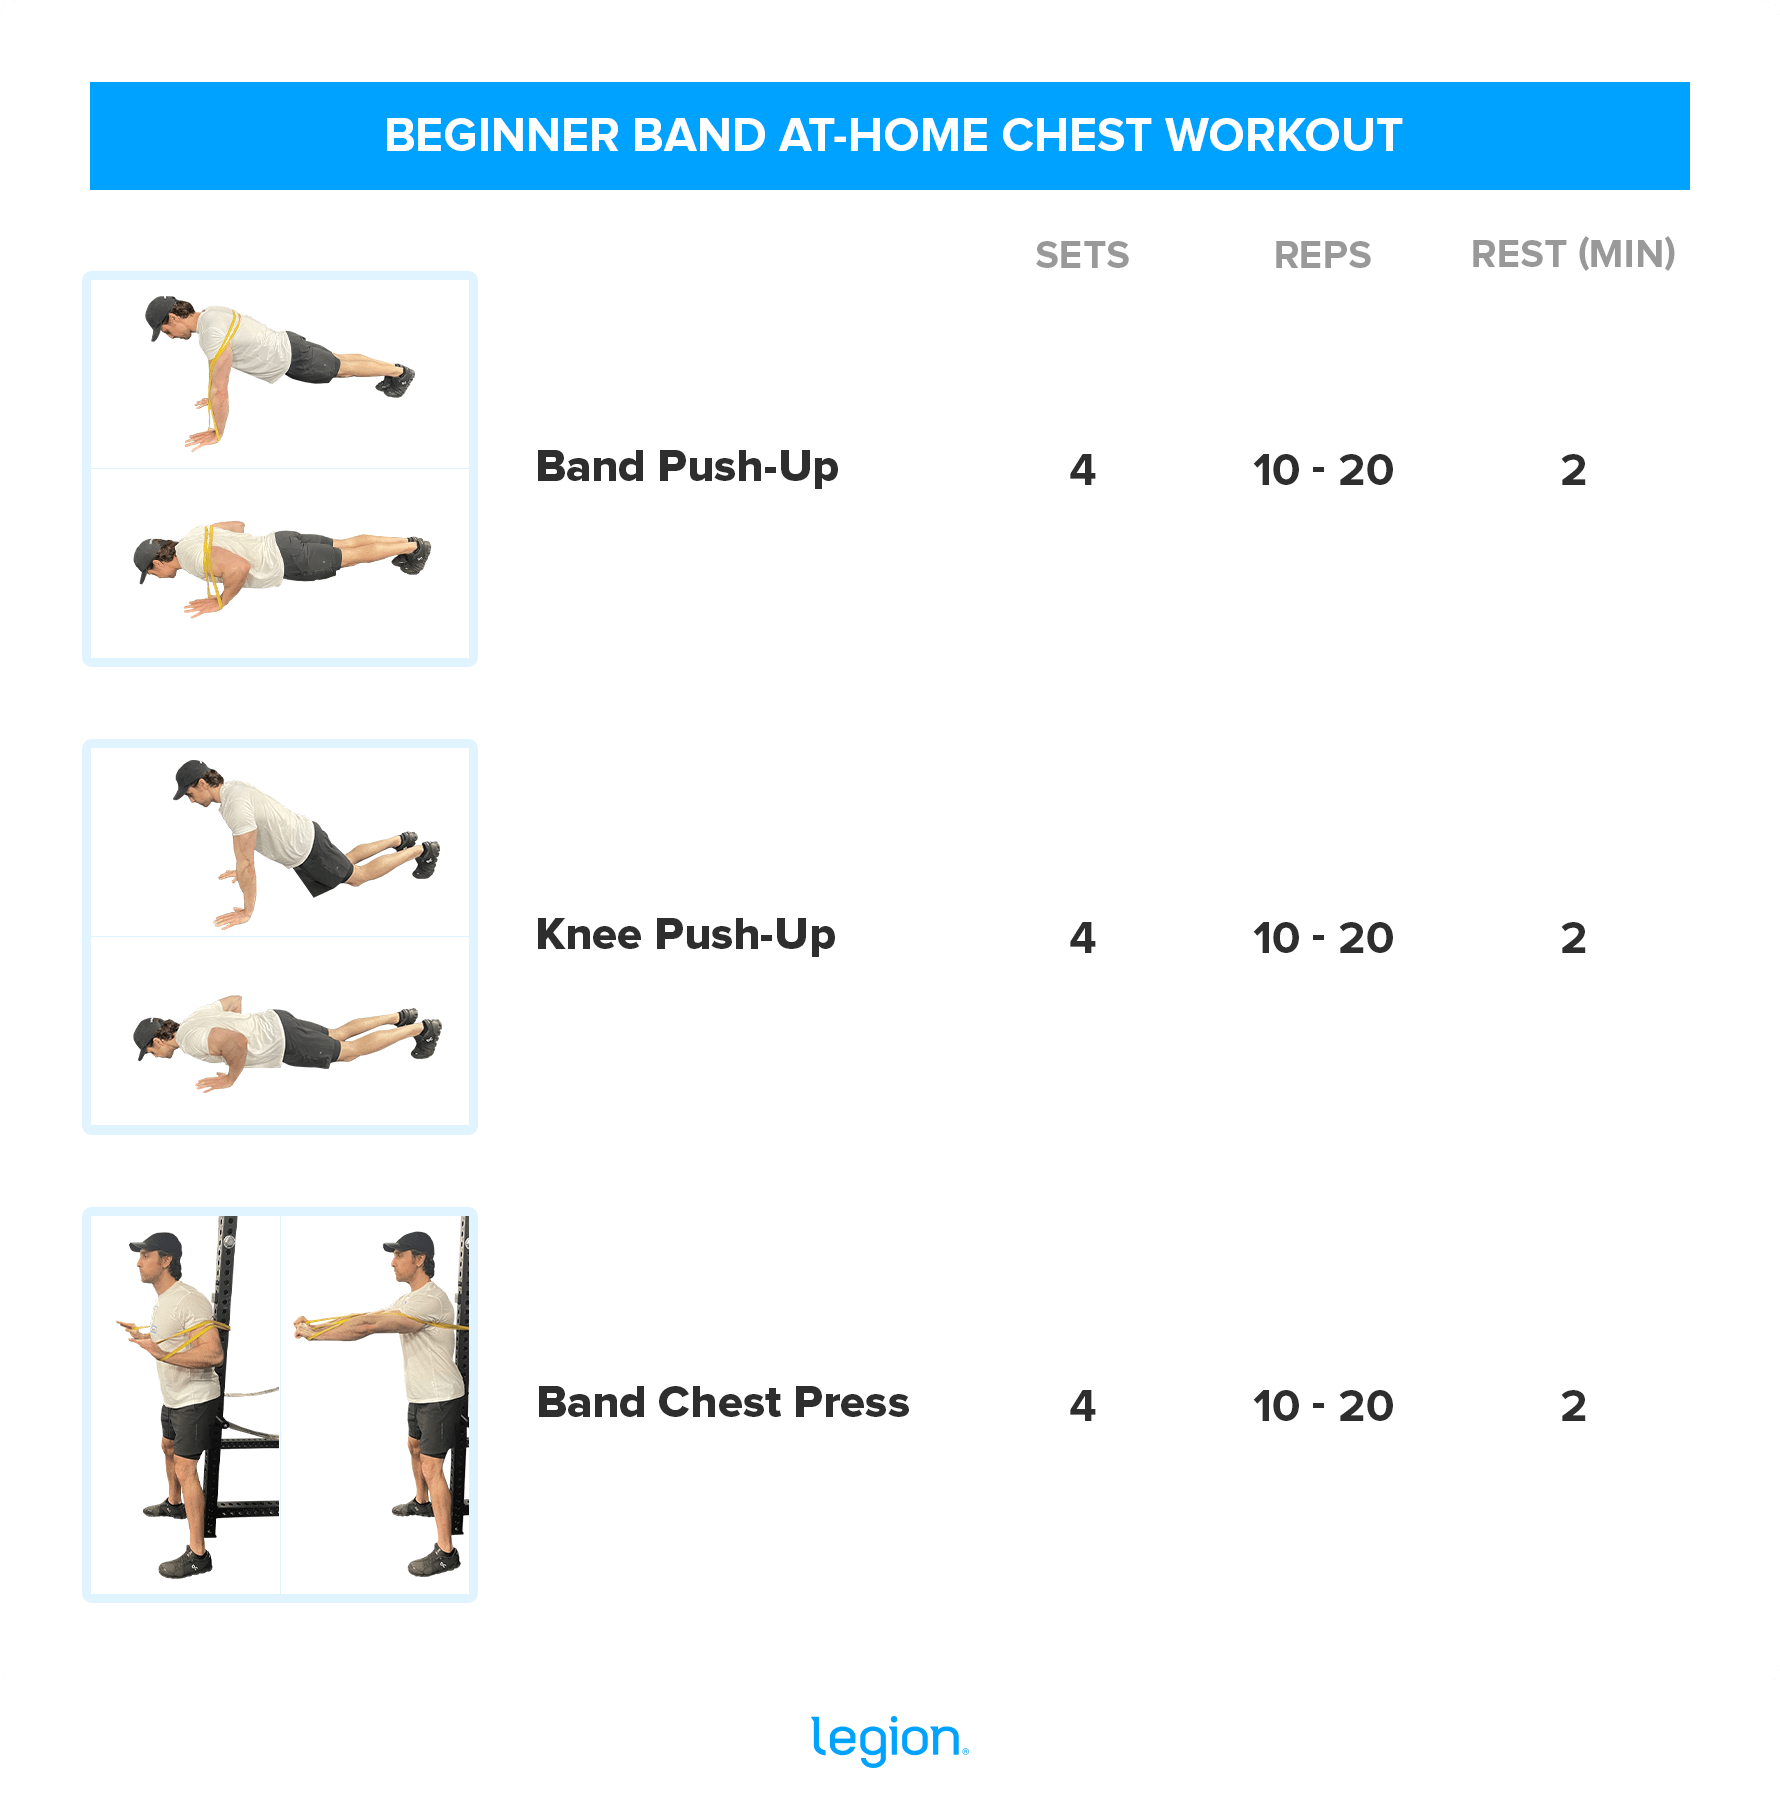 BEGINNER BAND AT-HOME CHEST WORKOUT